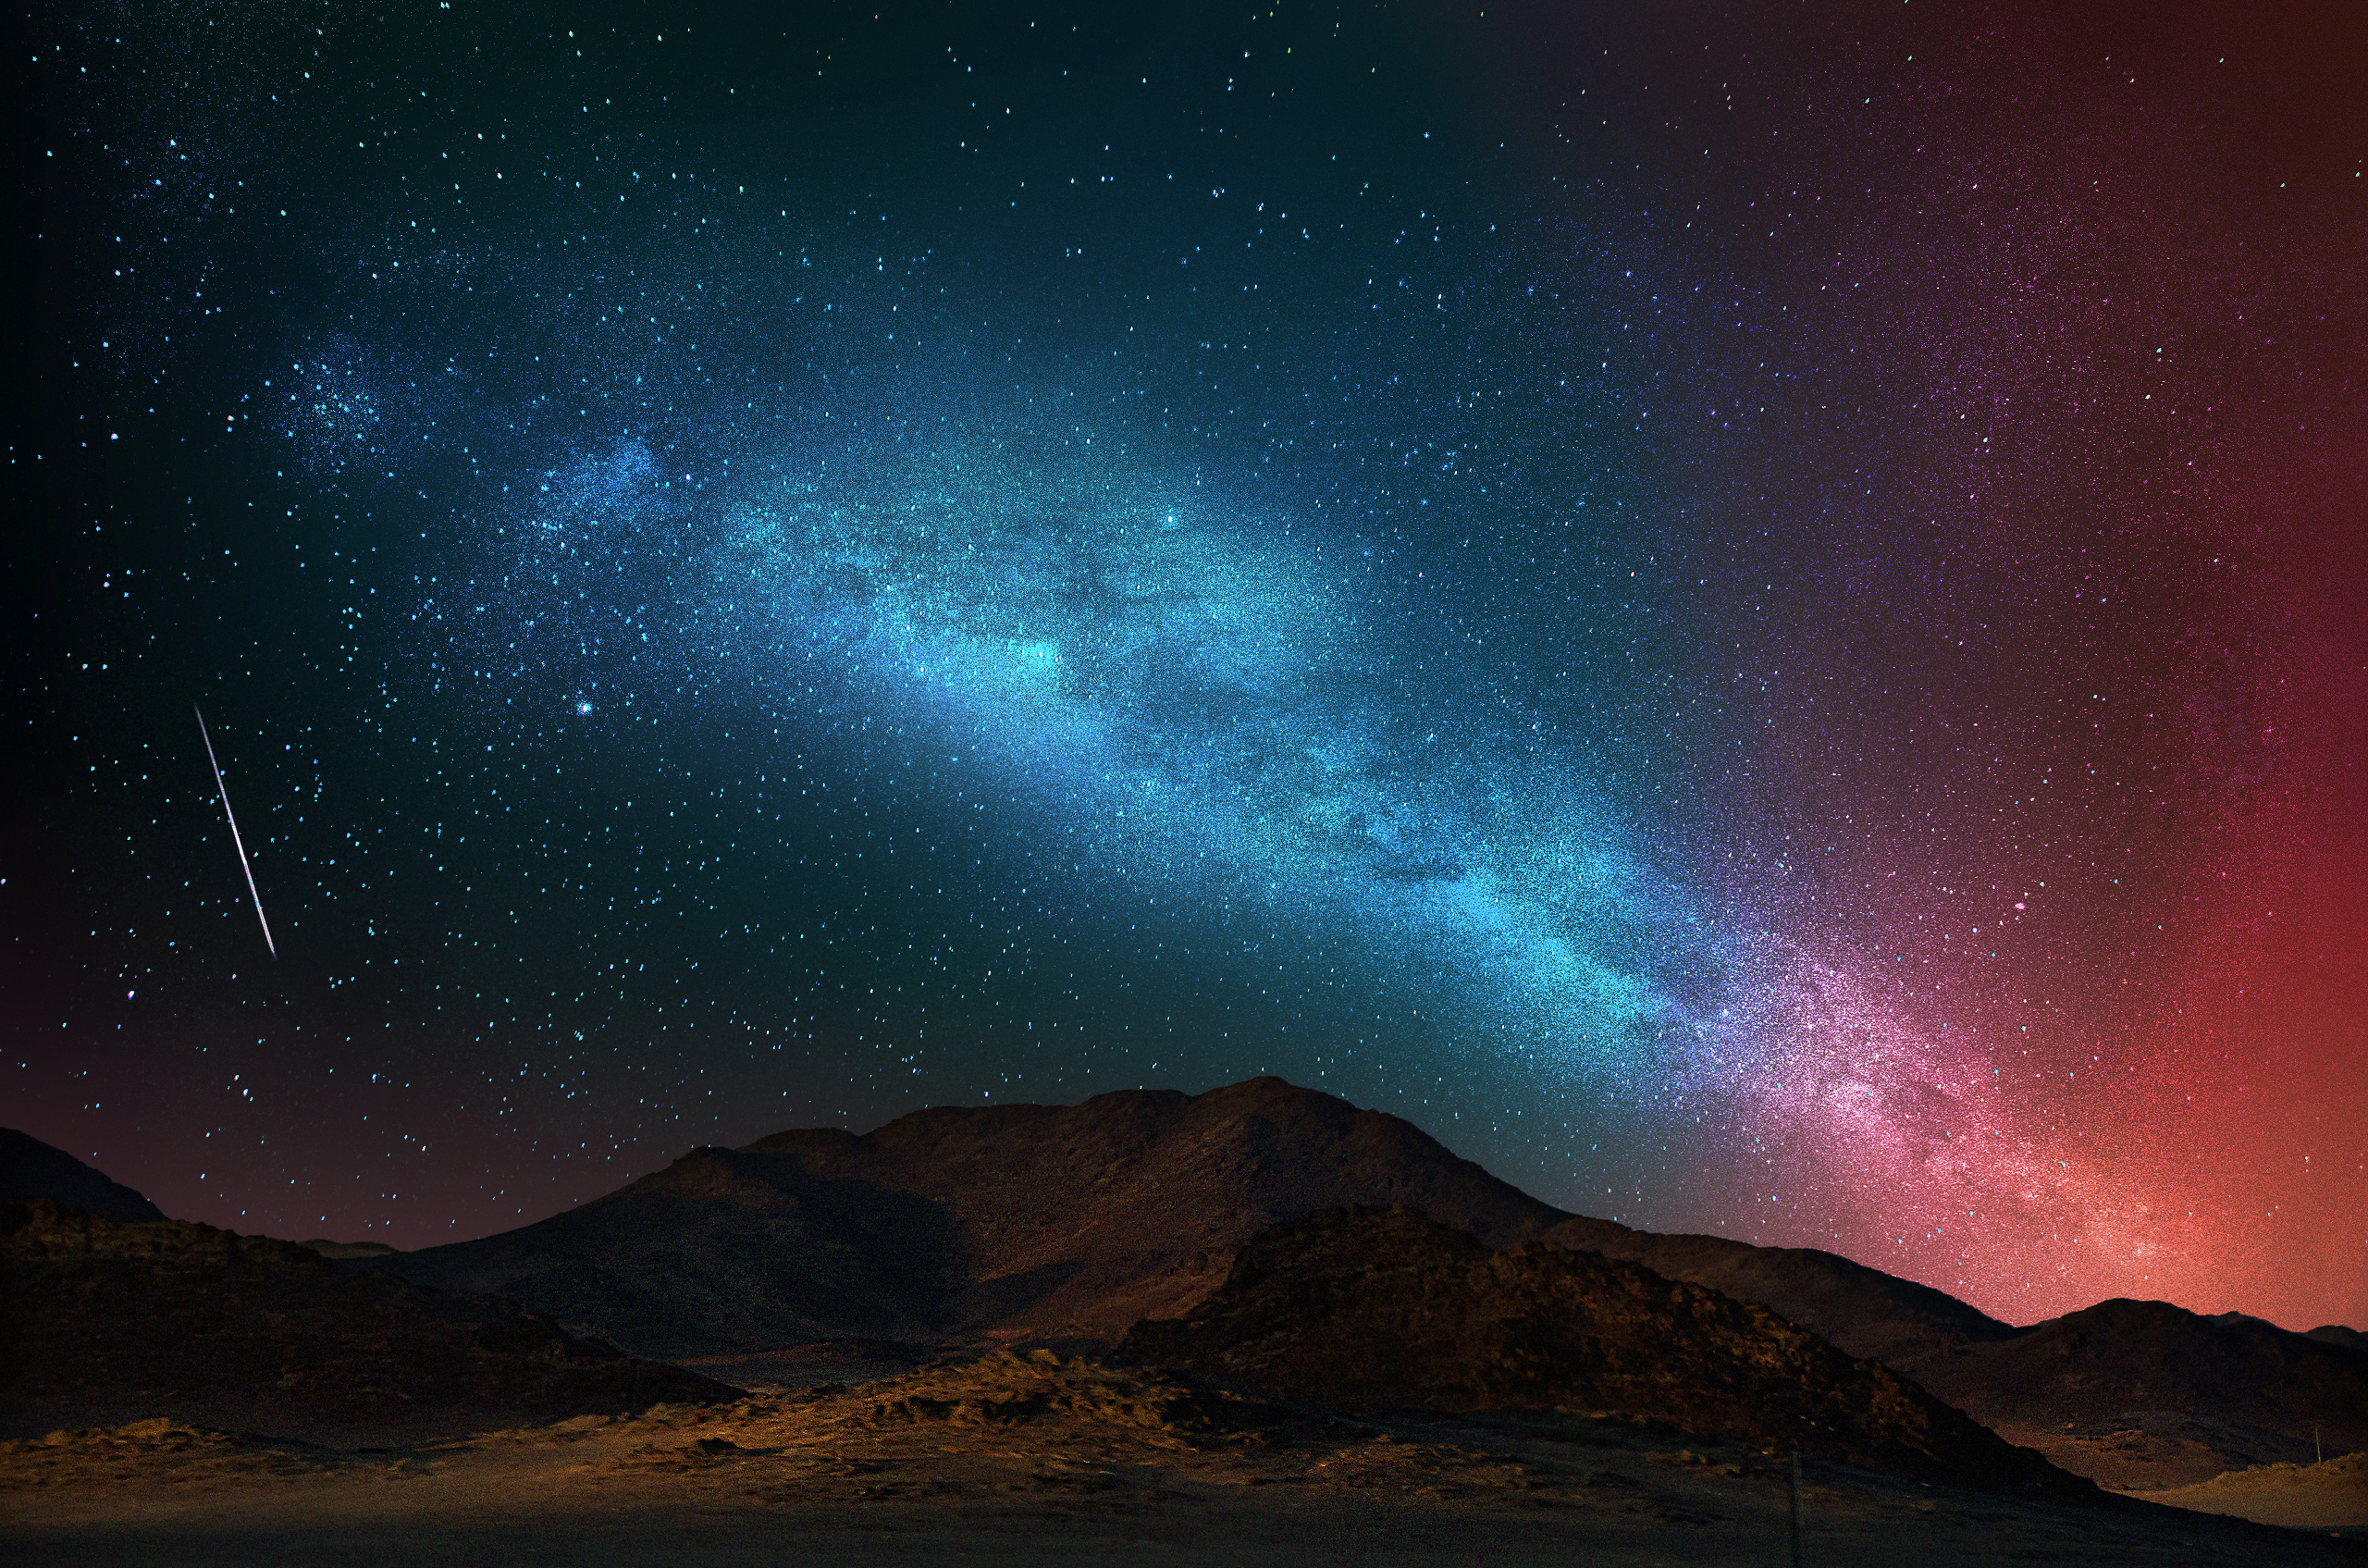 These Are The 12 Community Wallpapers Chosen for Ubuntu 14